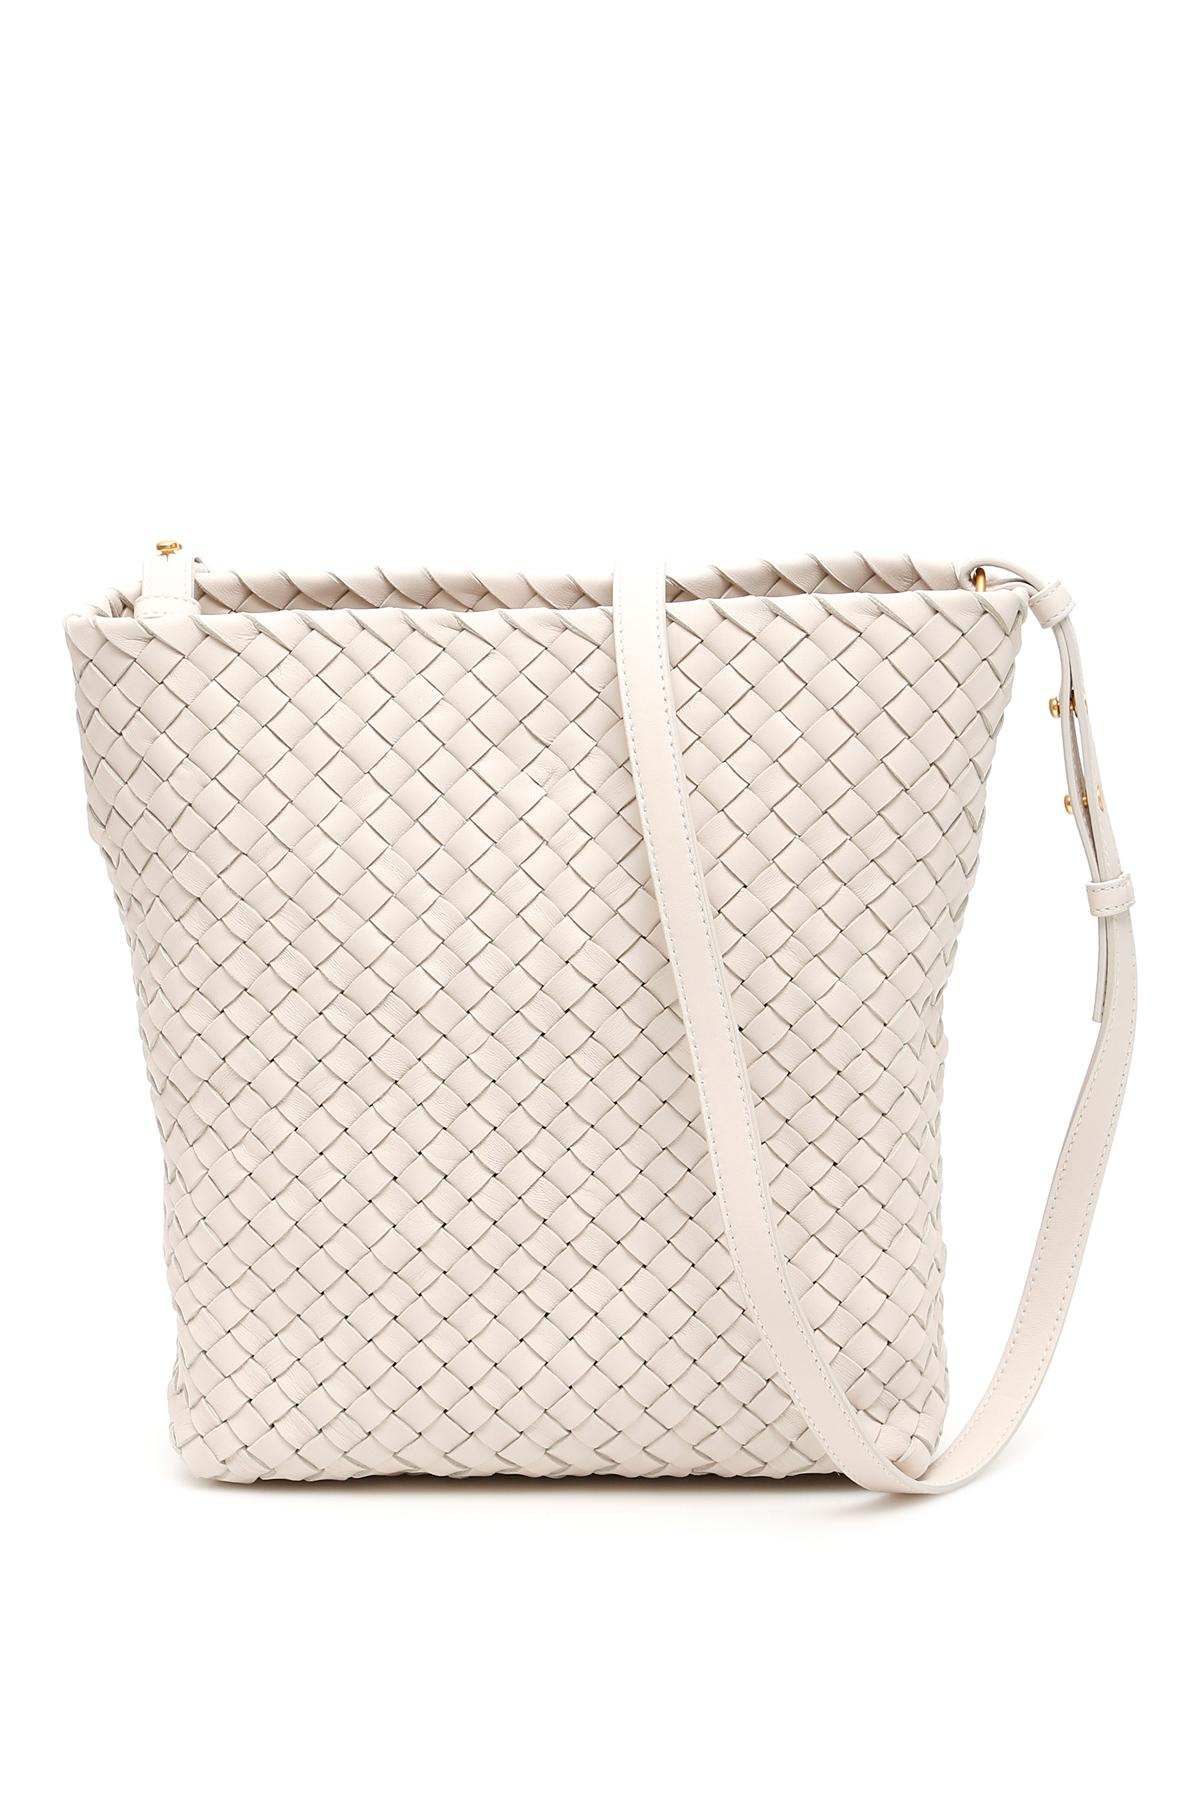 Bottega Veneta - Crossbody Bucket Bag